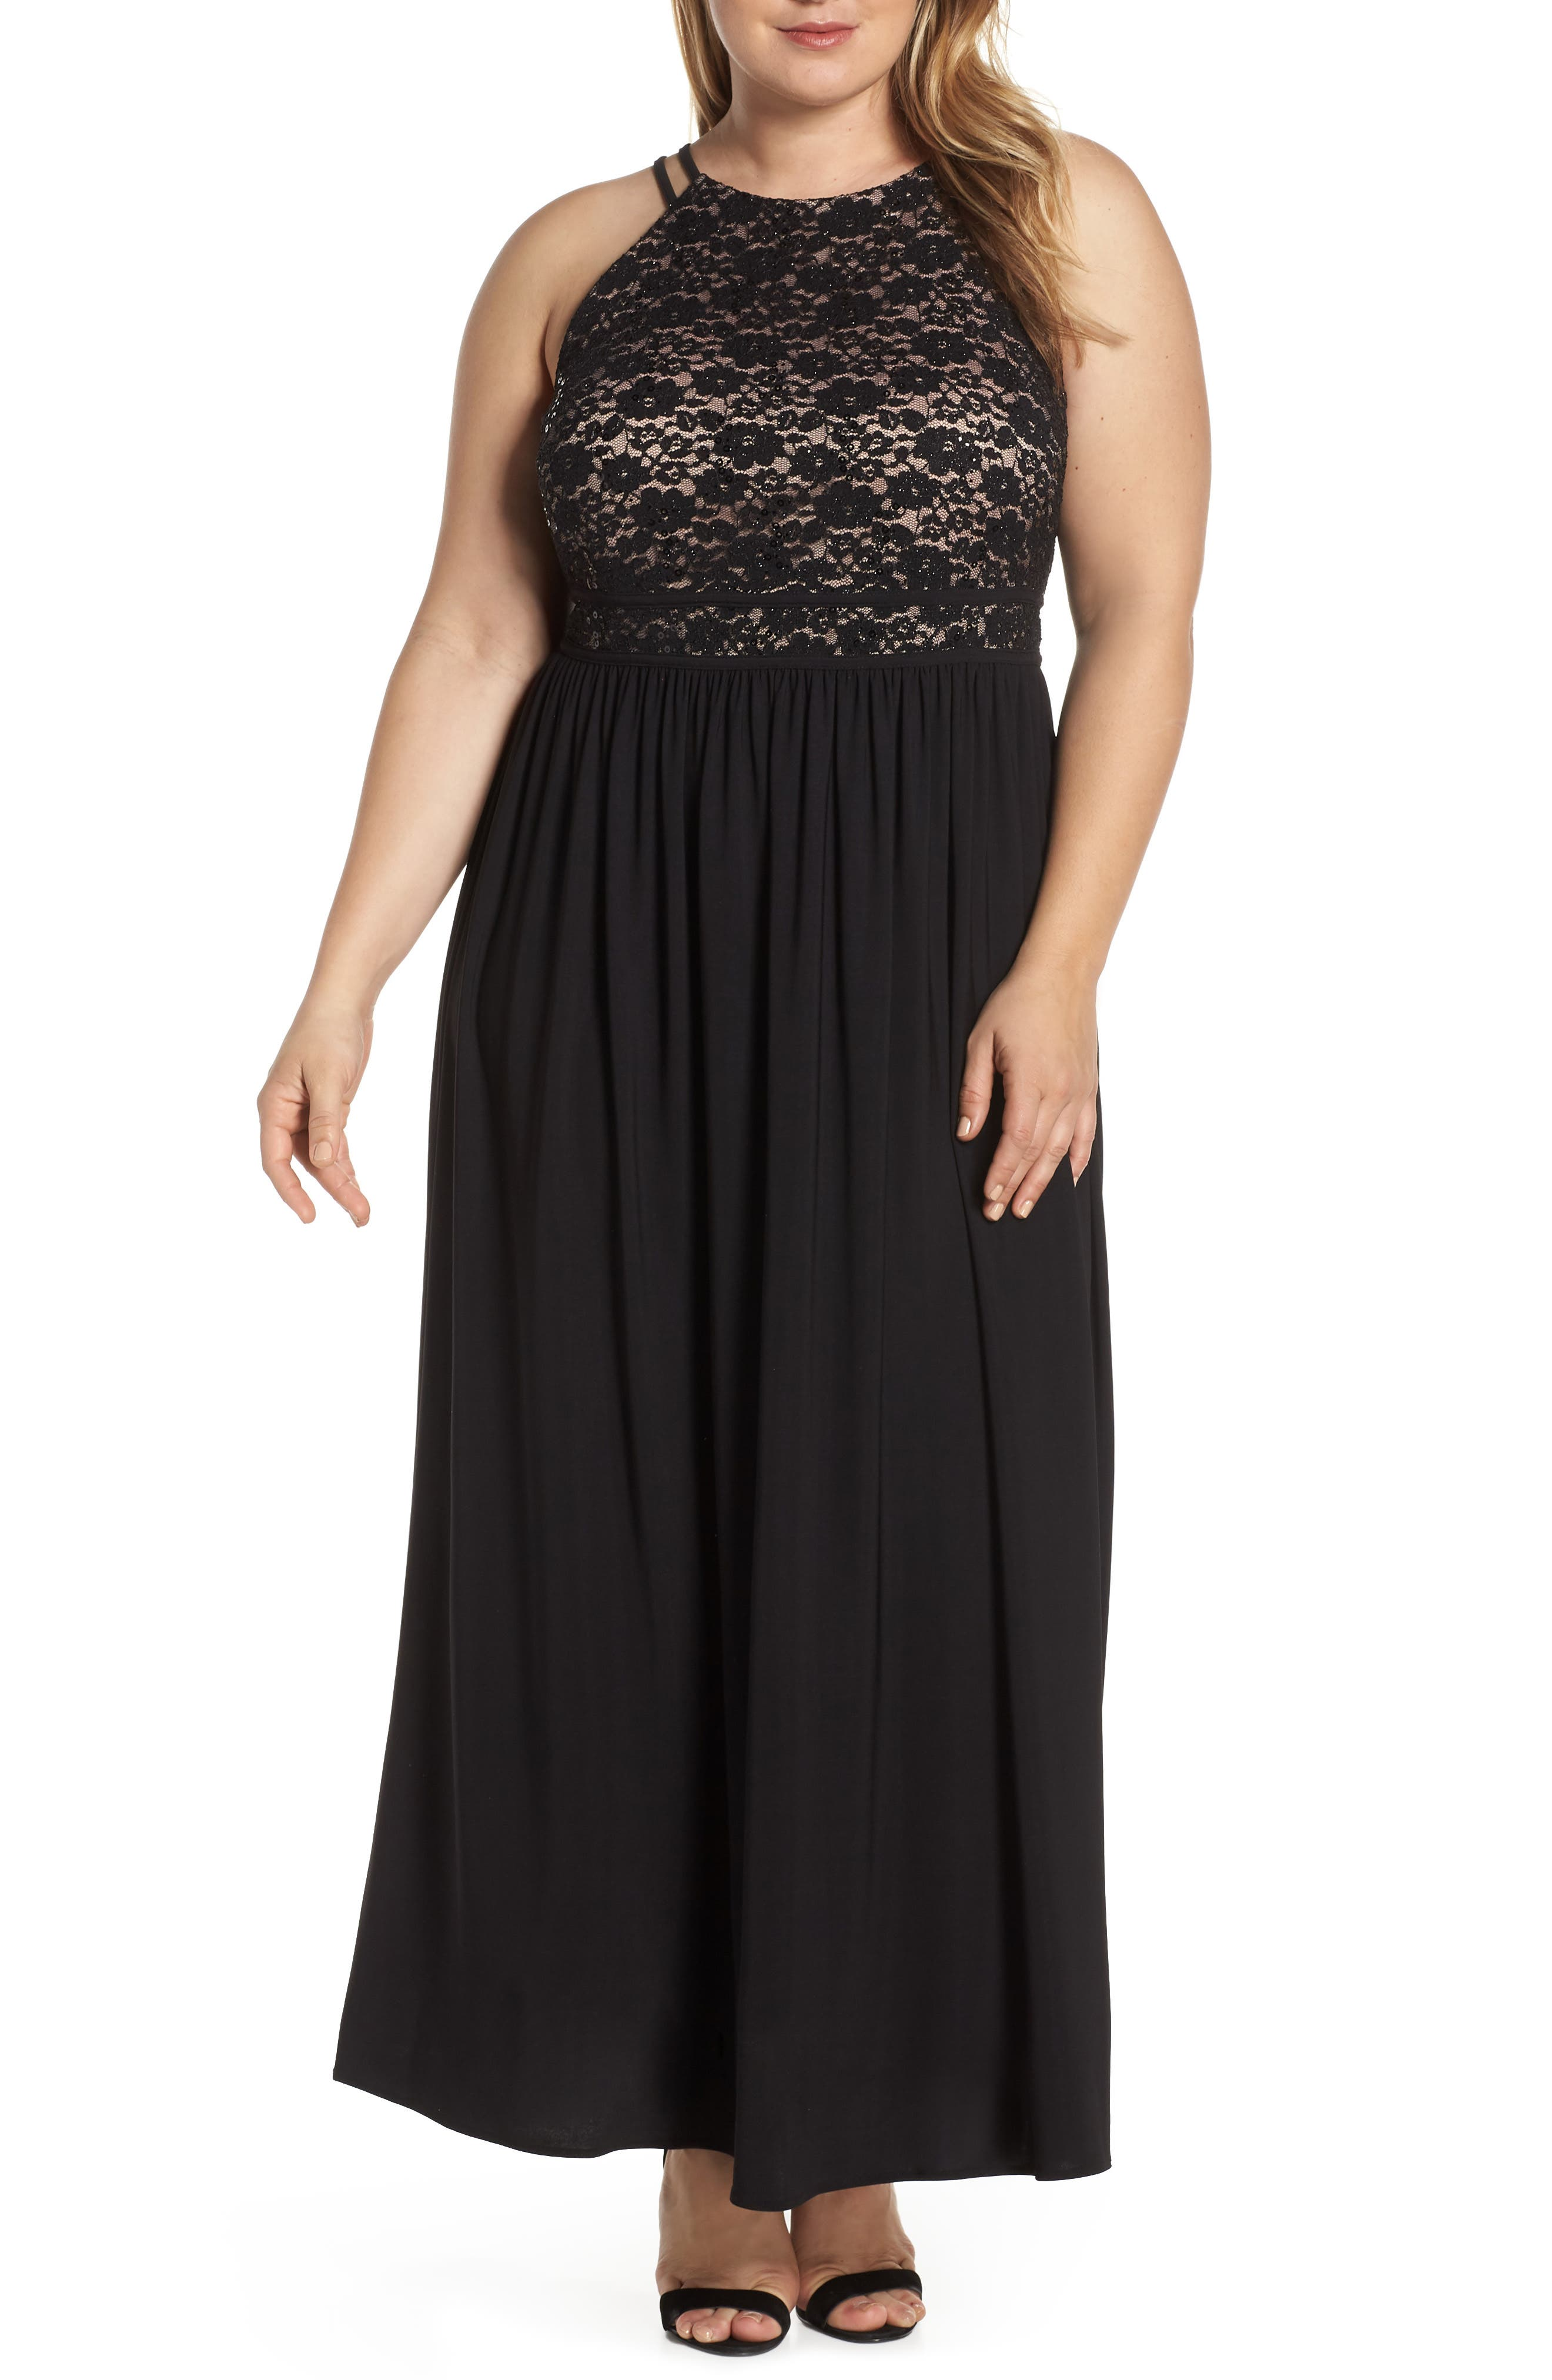 Plus Size Morgan & Co. Lace Bodice Evening Dress, Black